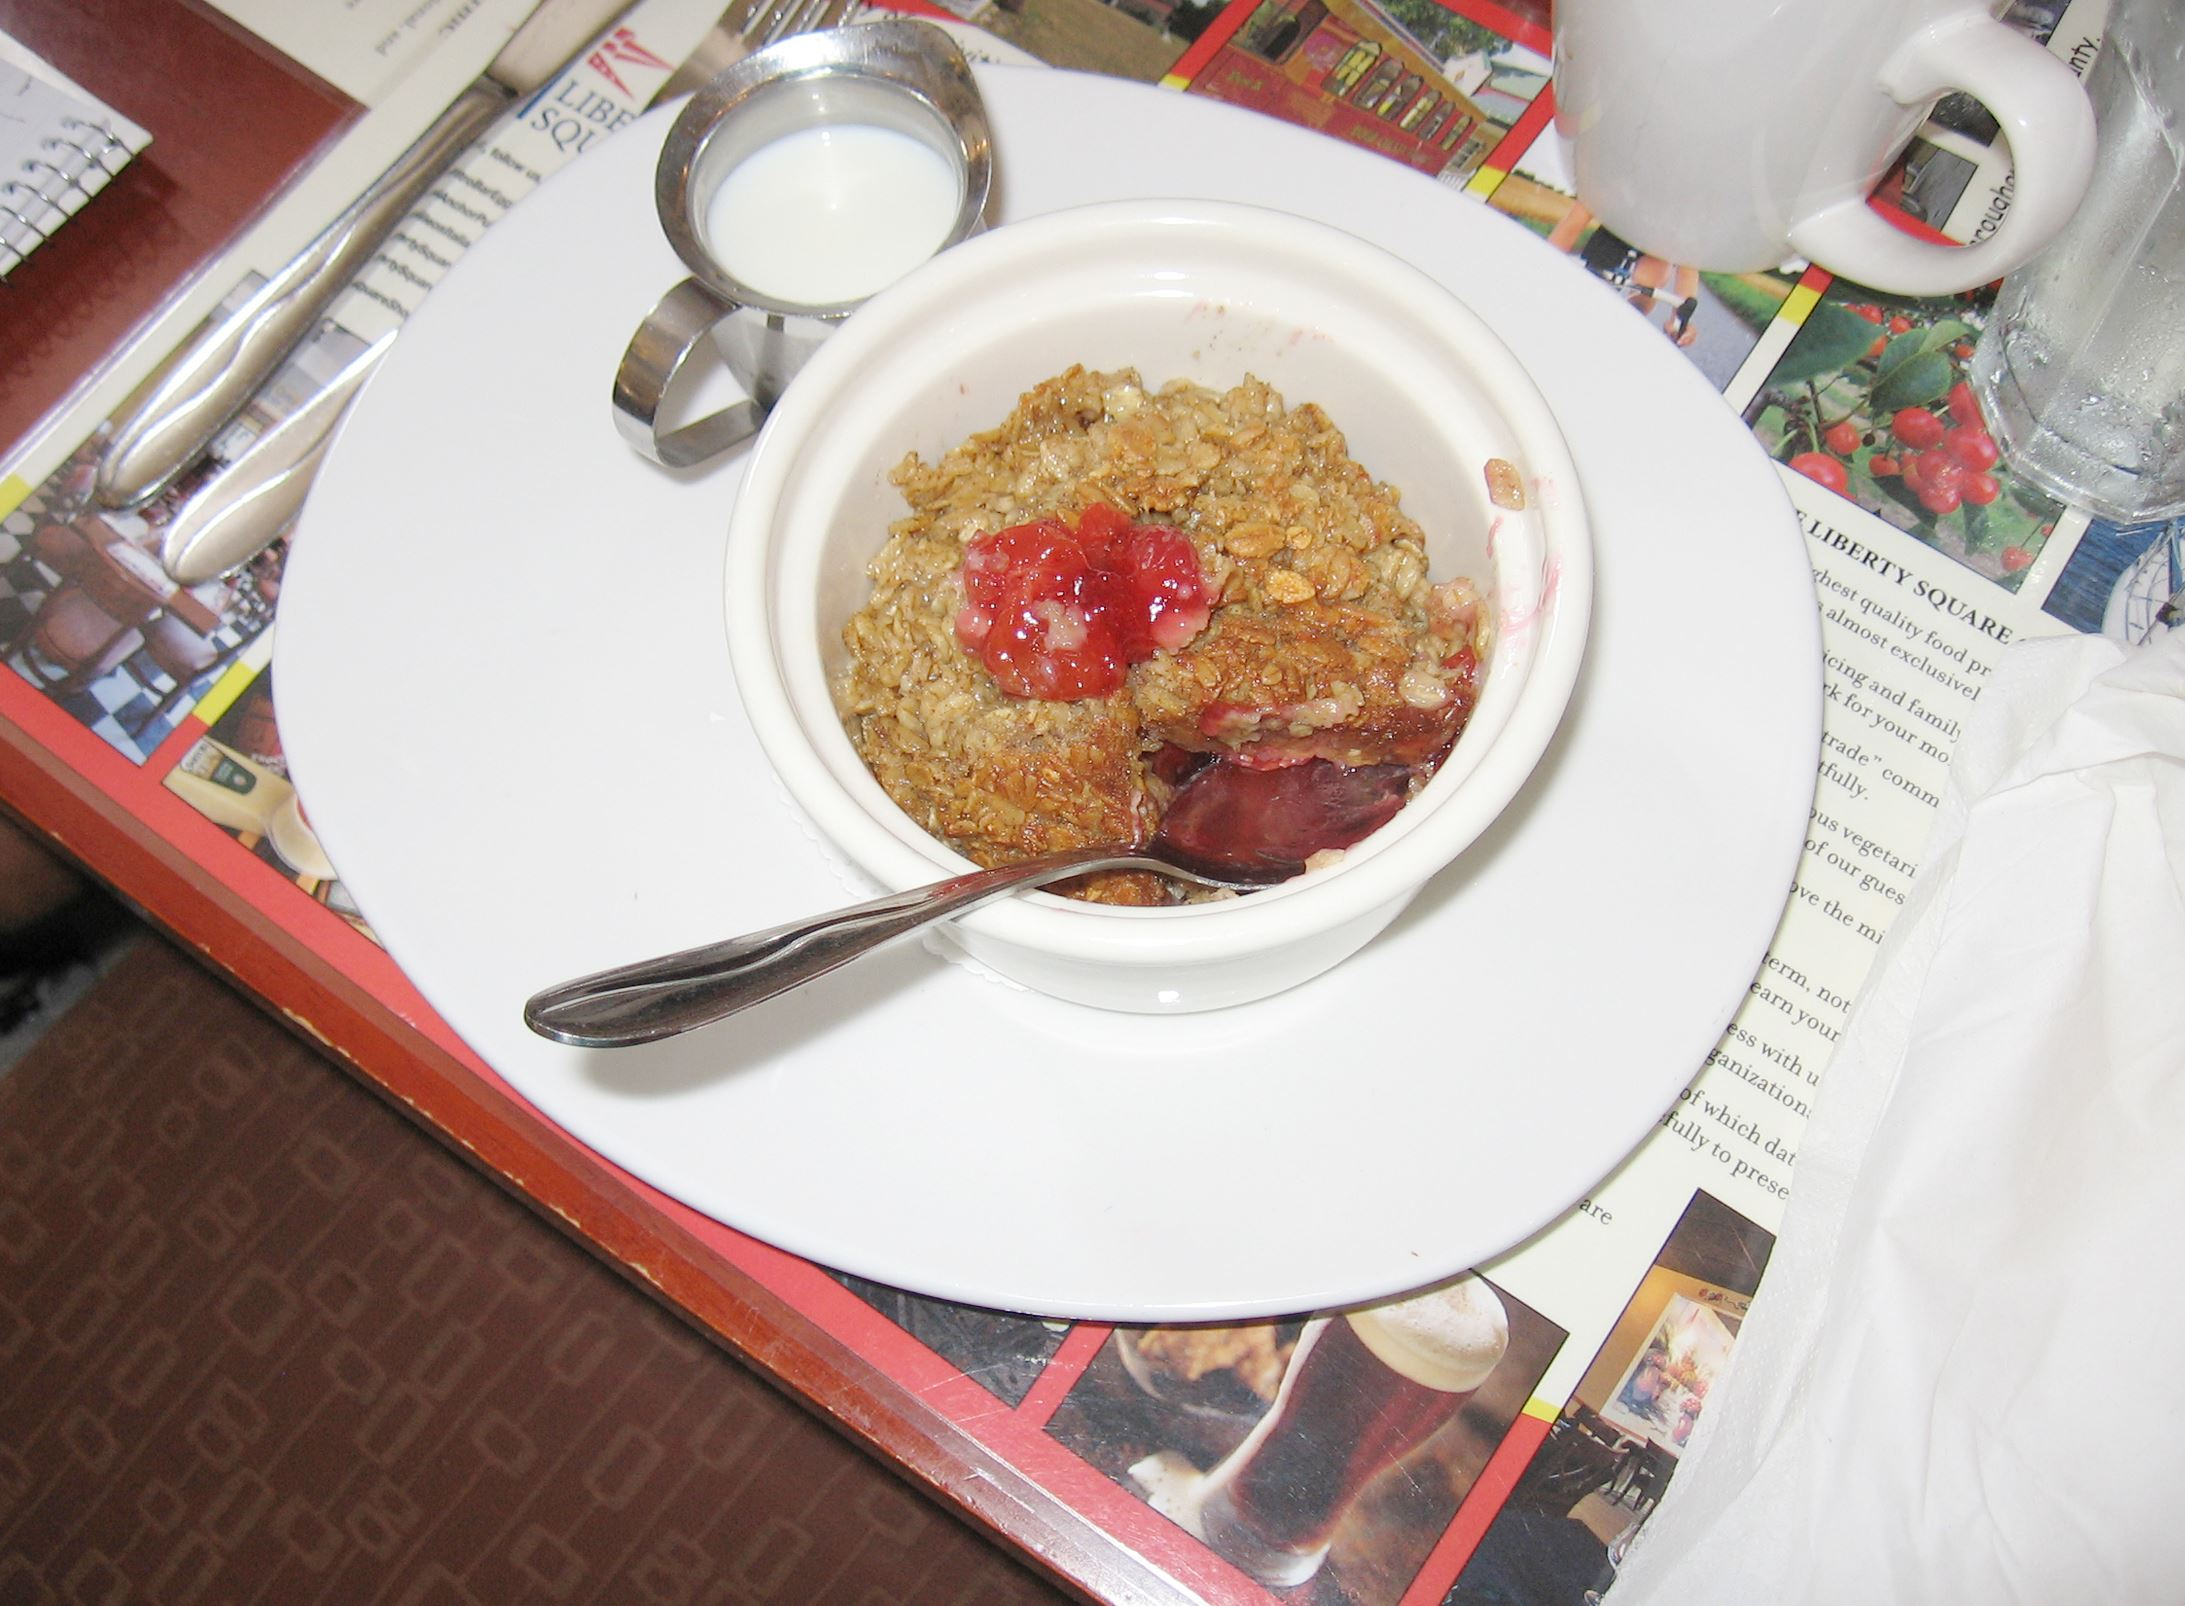 20140729howiscafood Baked Cherry Oatmeal from The Bistro Bar and Grill at Liberty Square, Egg Harbor, Wisc.